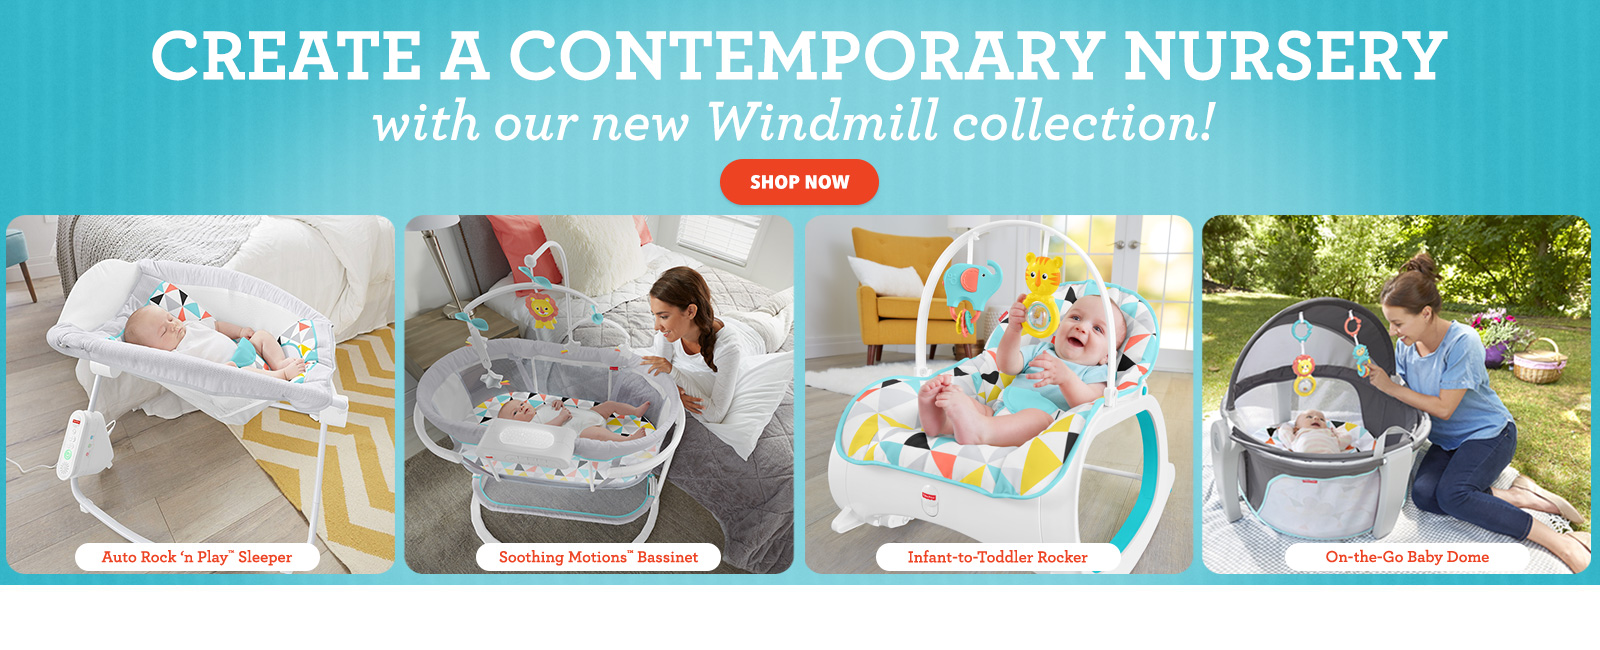 Create a Contemporary Nursery